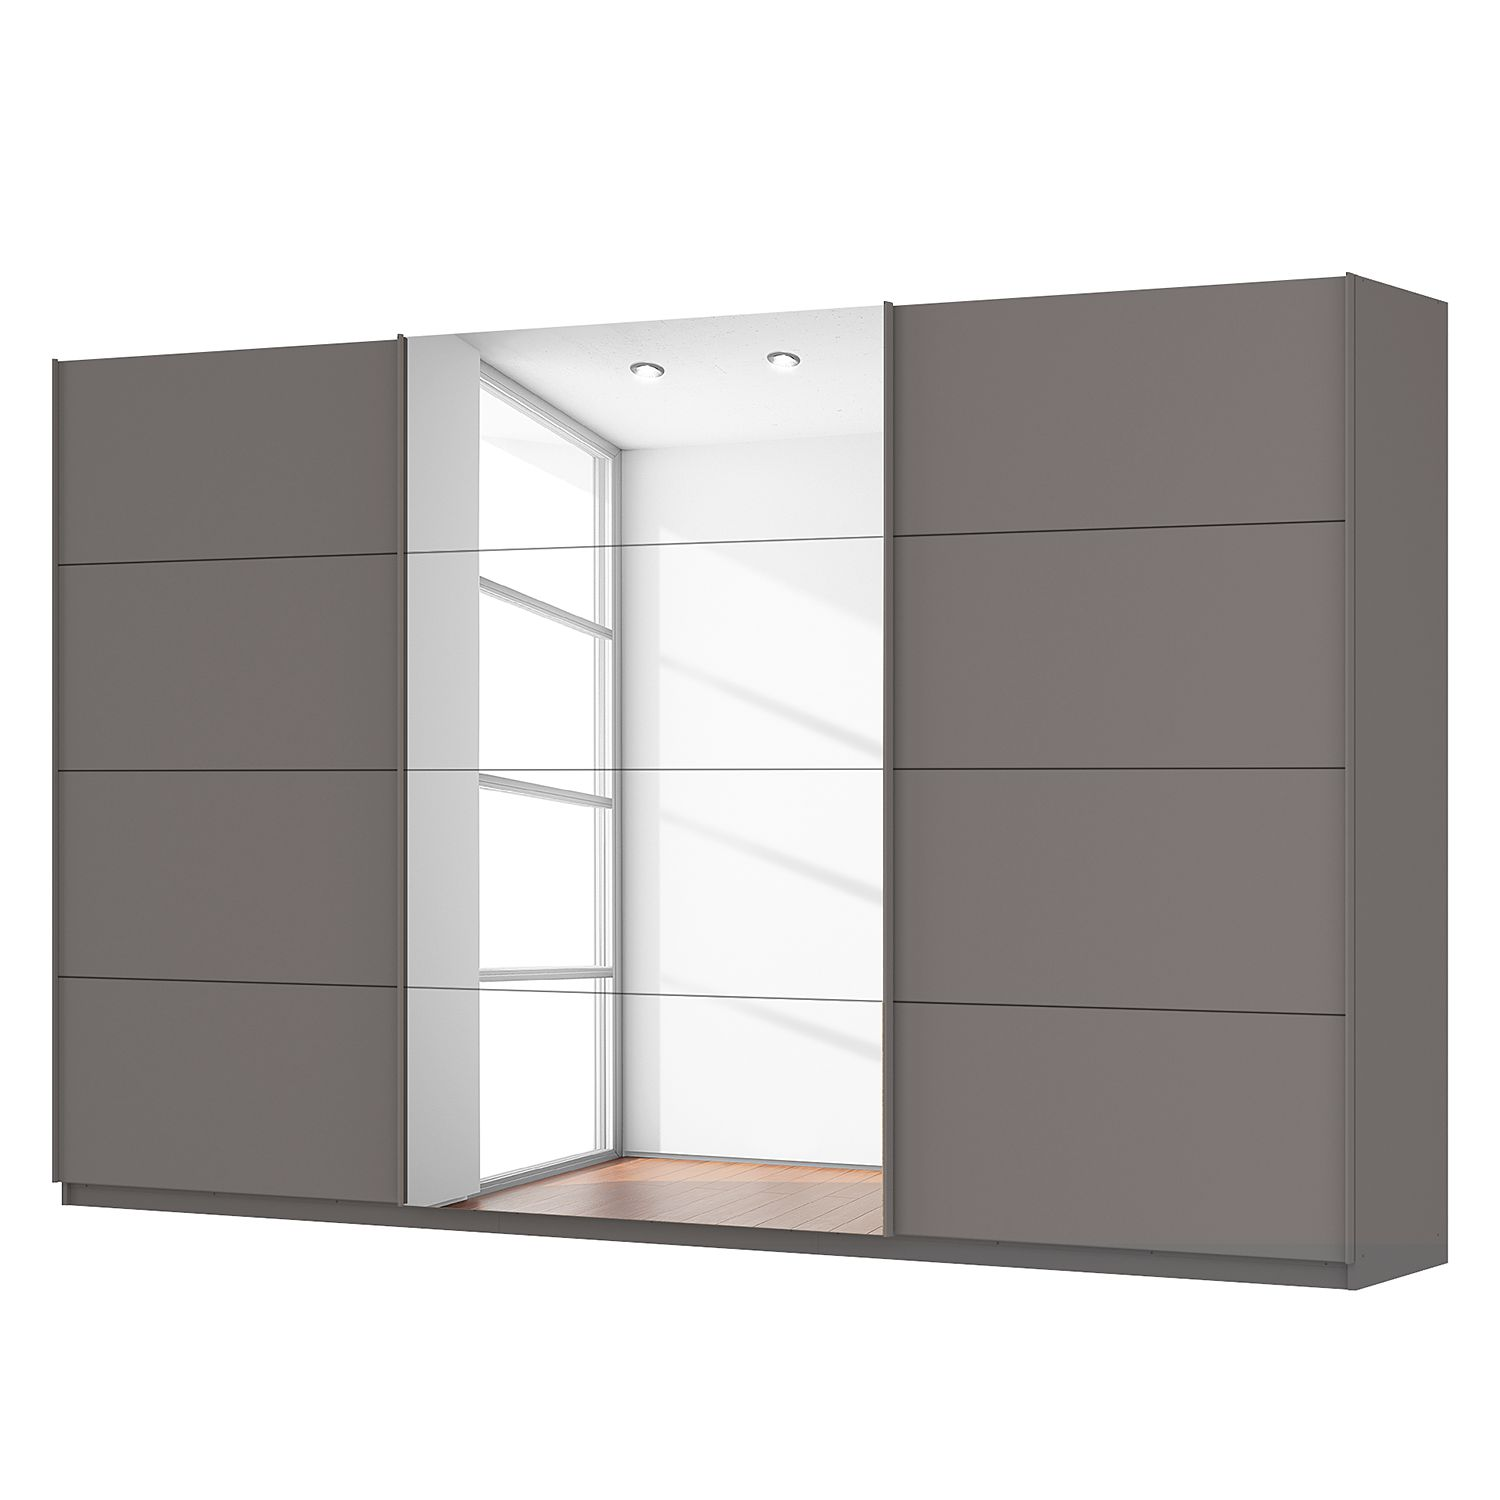 schwebet renschrank sk p 360 cm 3 t rig 222 cm. Black Bedroom Furniture Sets. Home Design Ideas